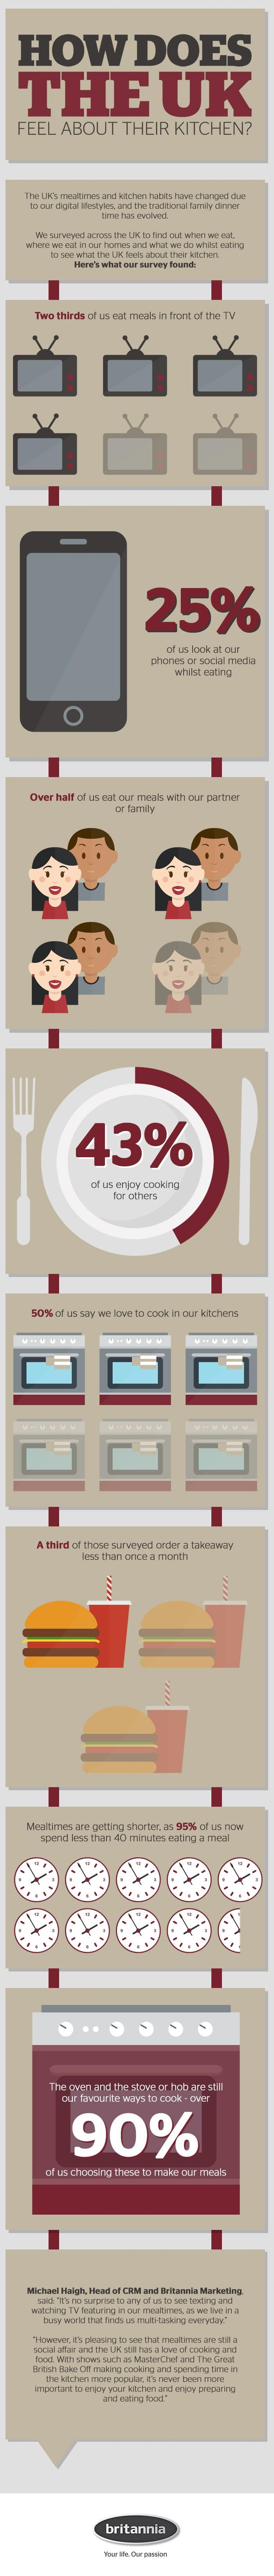 How does the UK feel about their kitchen?